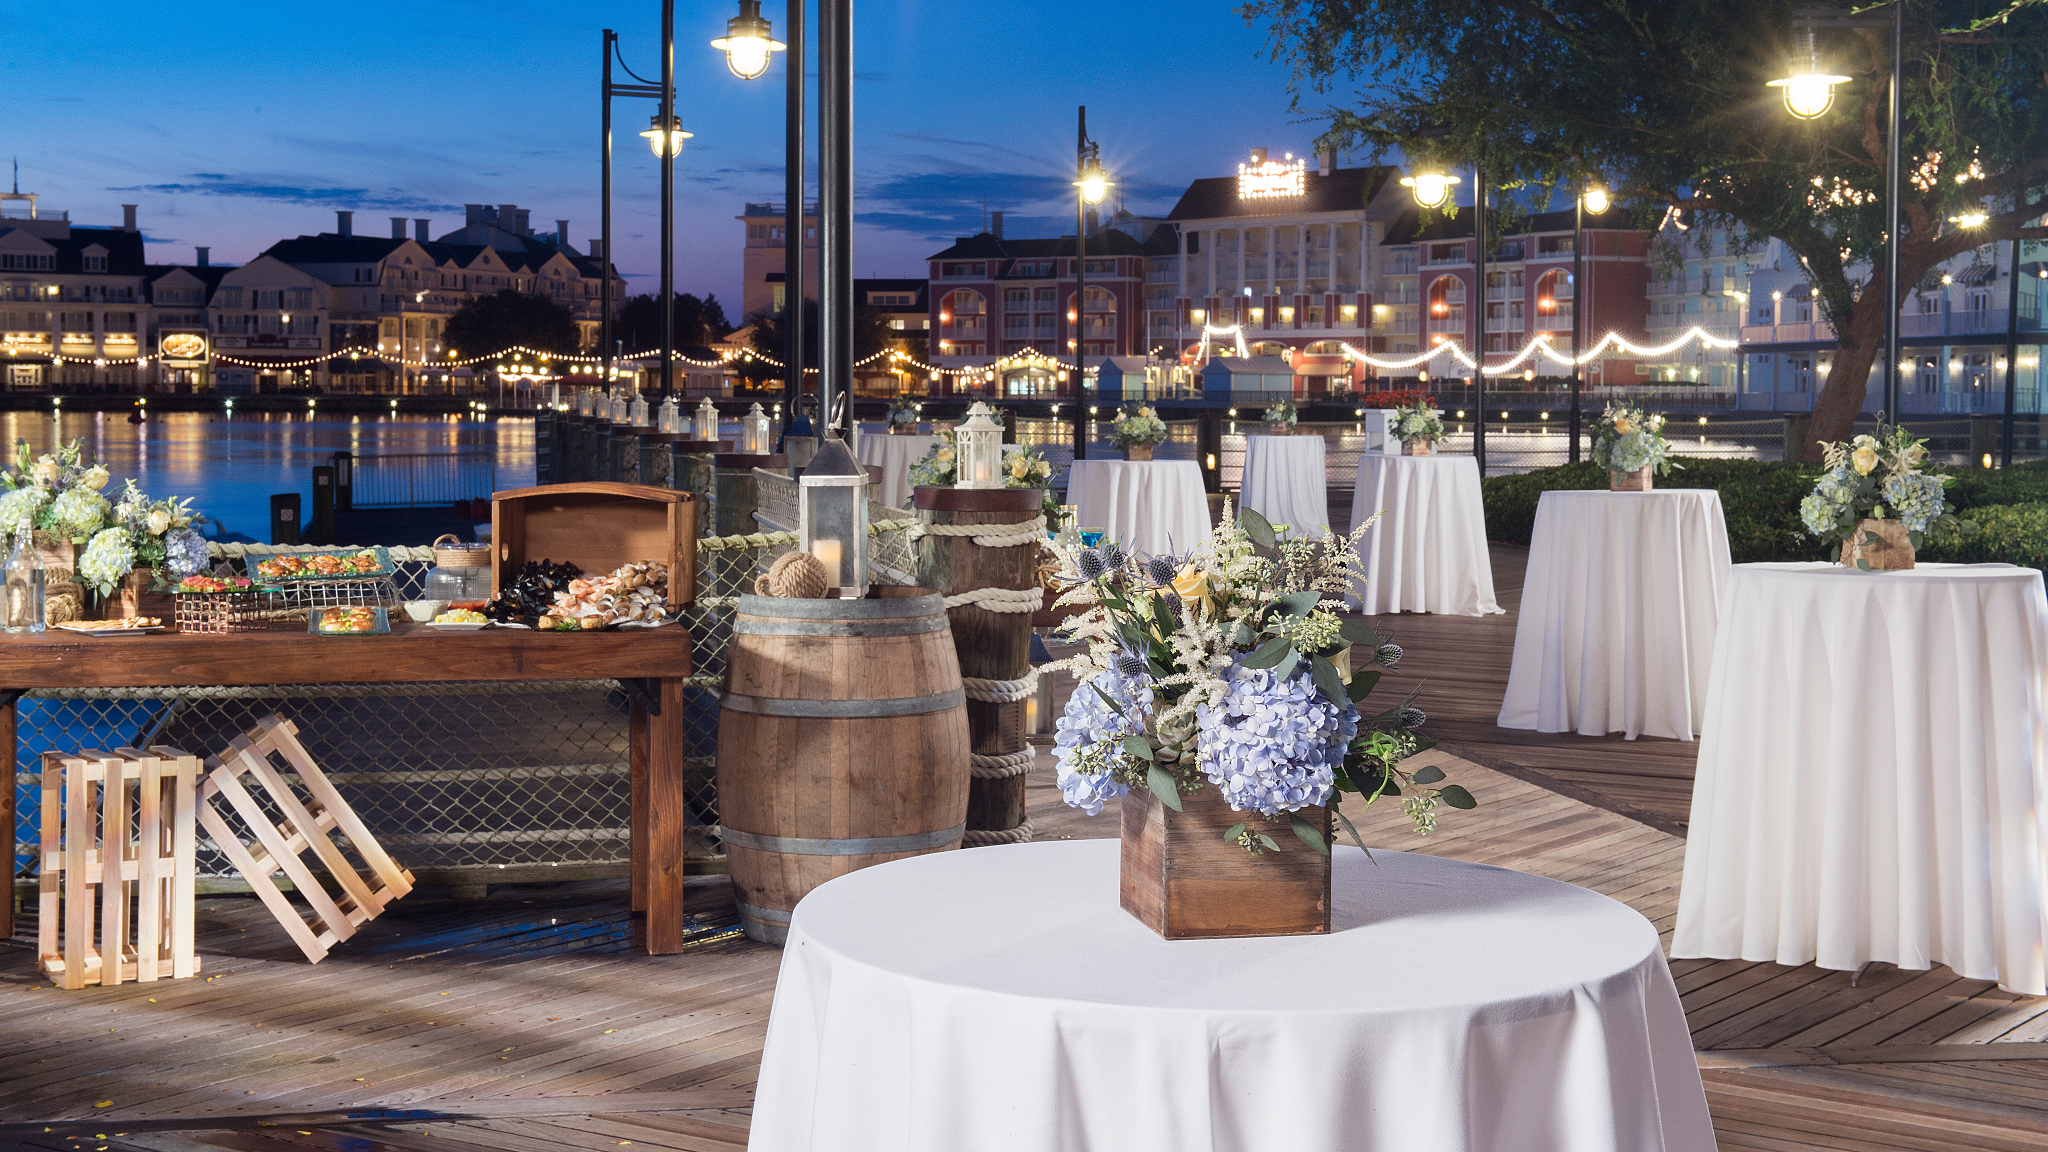 A boardwalk overlooking a lake featuring high tables with linens and floral centerpieces